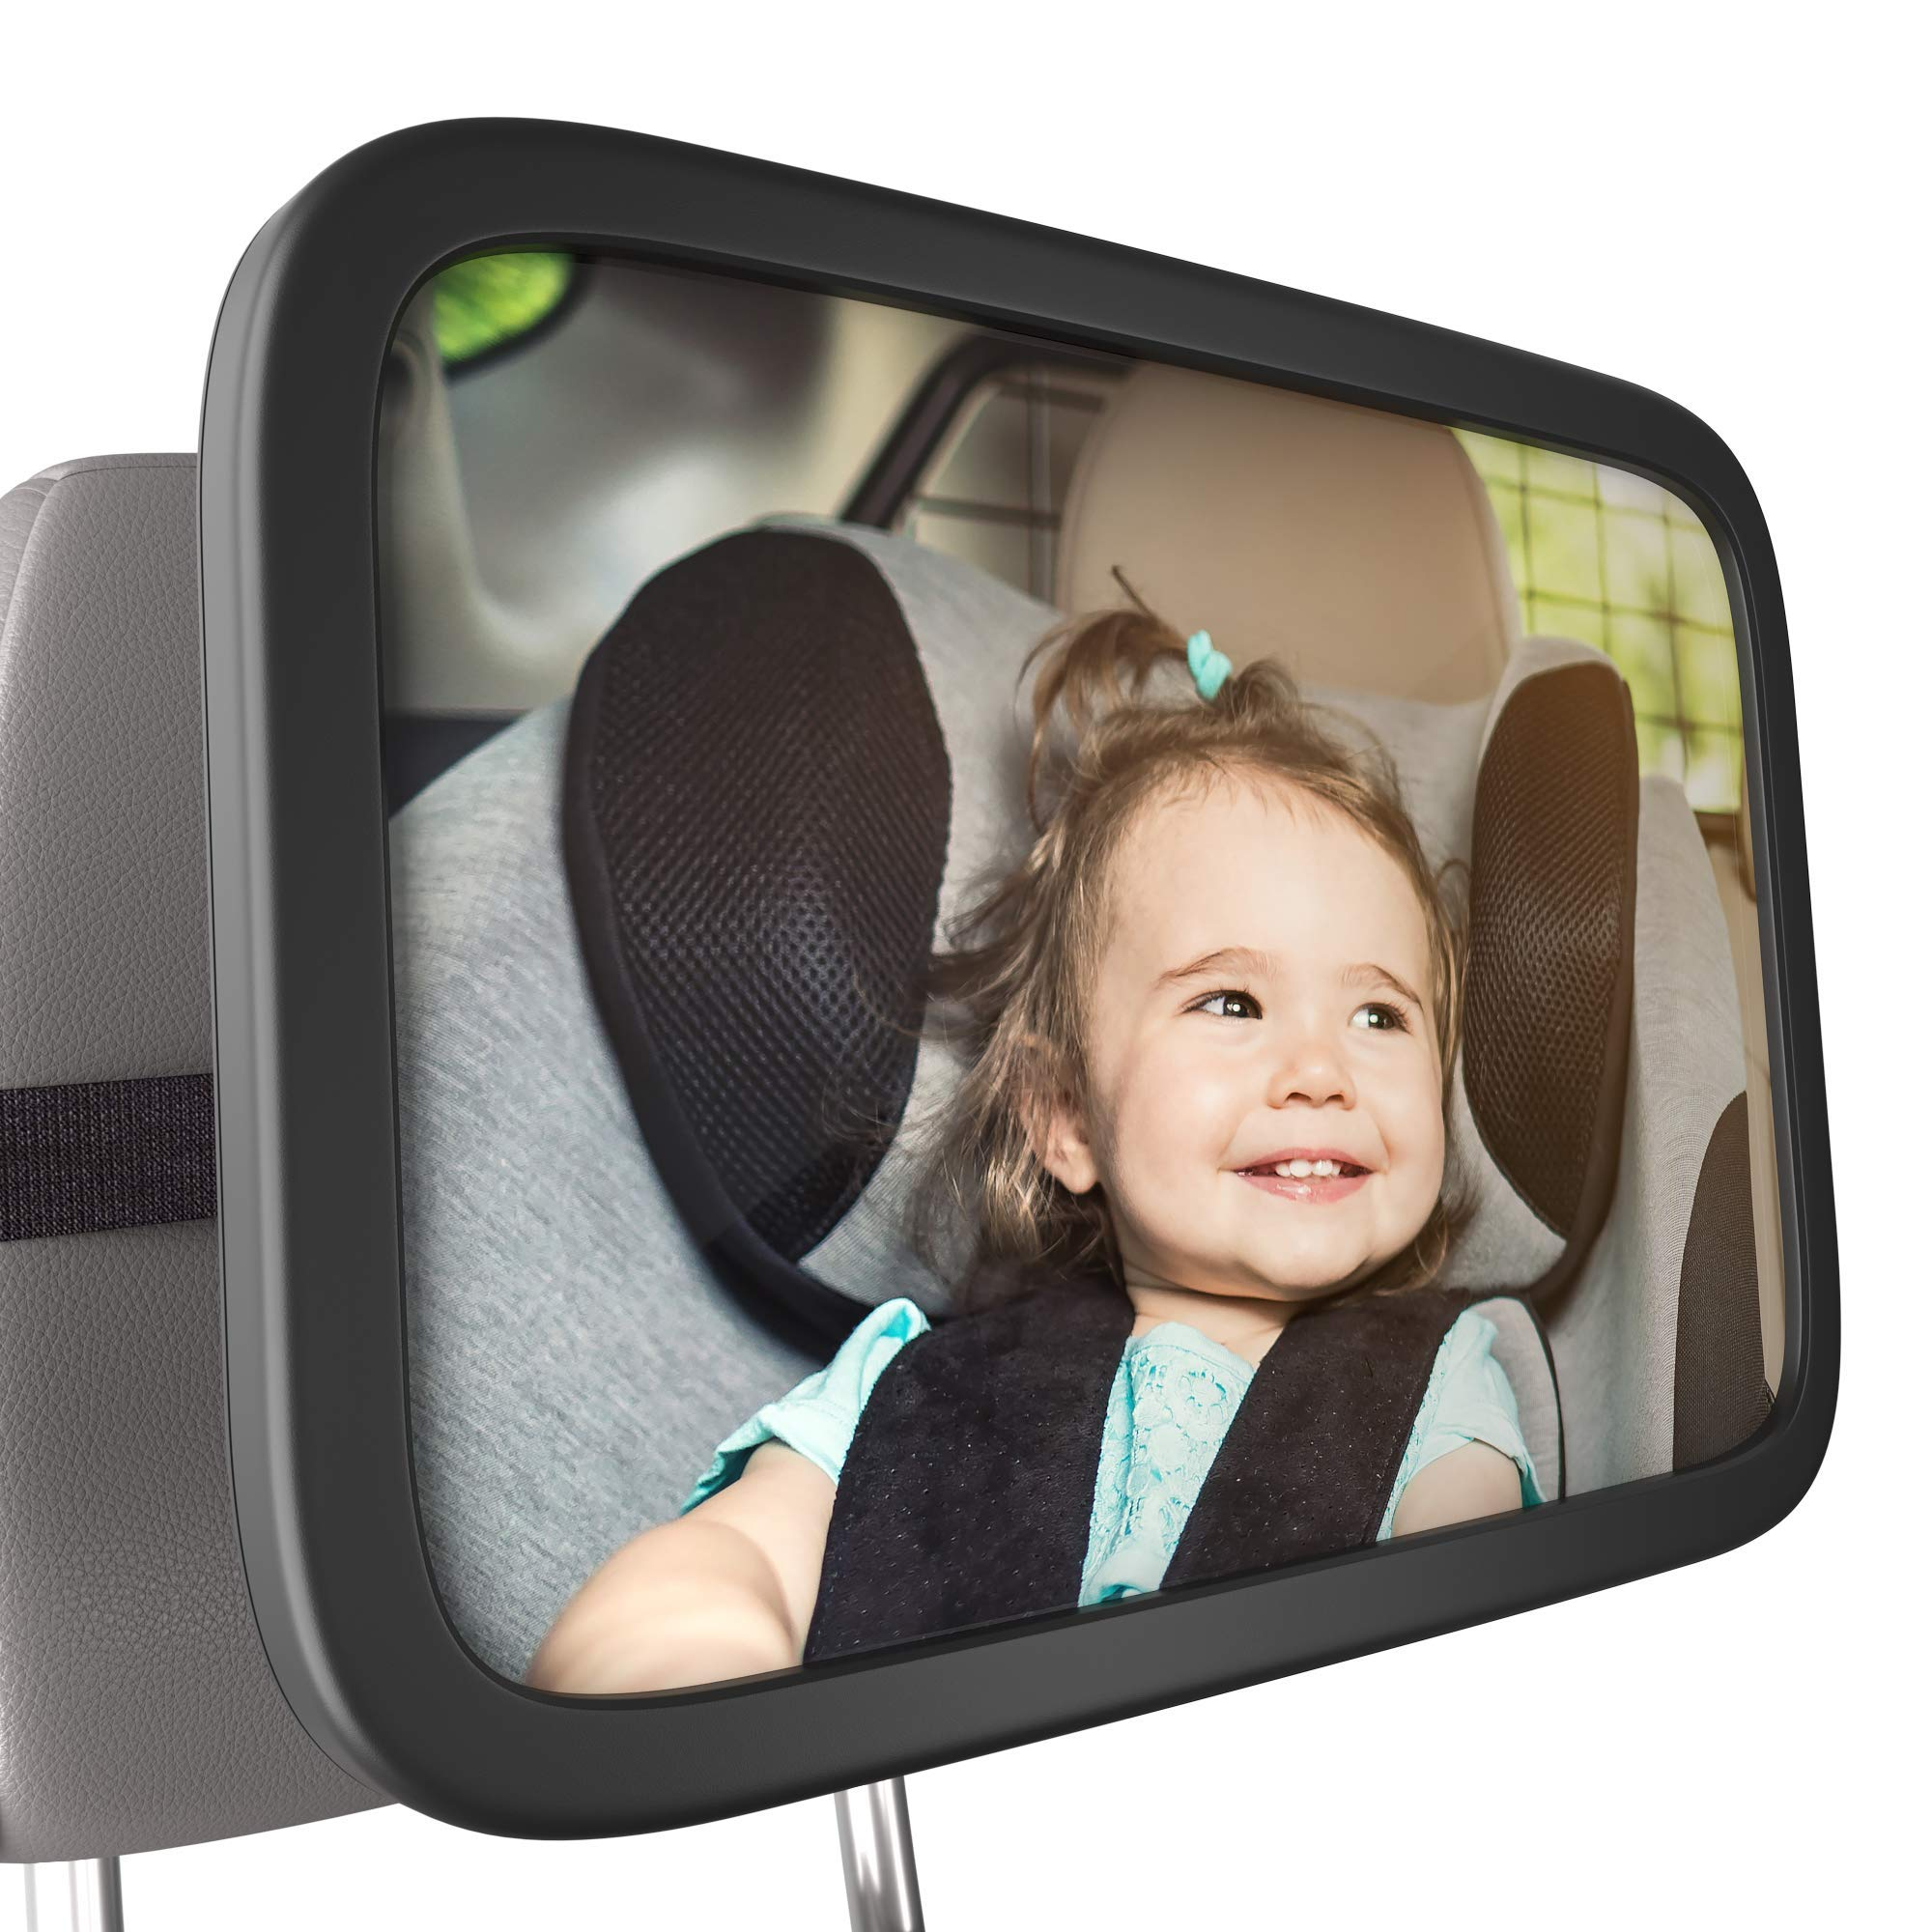 Bambinii Baby Mirror For Car- 360° Adjustable, Rear Facing Car Seat Mirror For Crystal Clear View Of Baby For Safe Driving - Shatterproof, Convex Backseat Safety Monitor Mirror For Newborns & Toddlers by Galactic Product Innovation